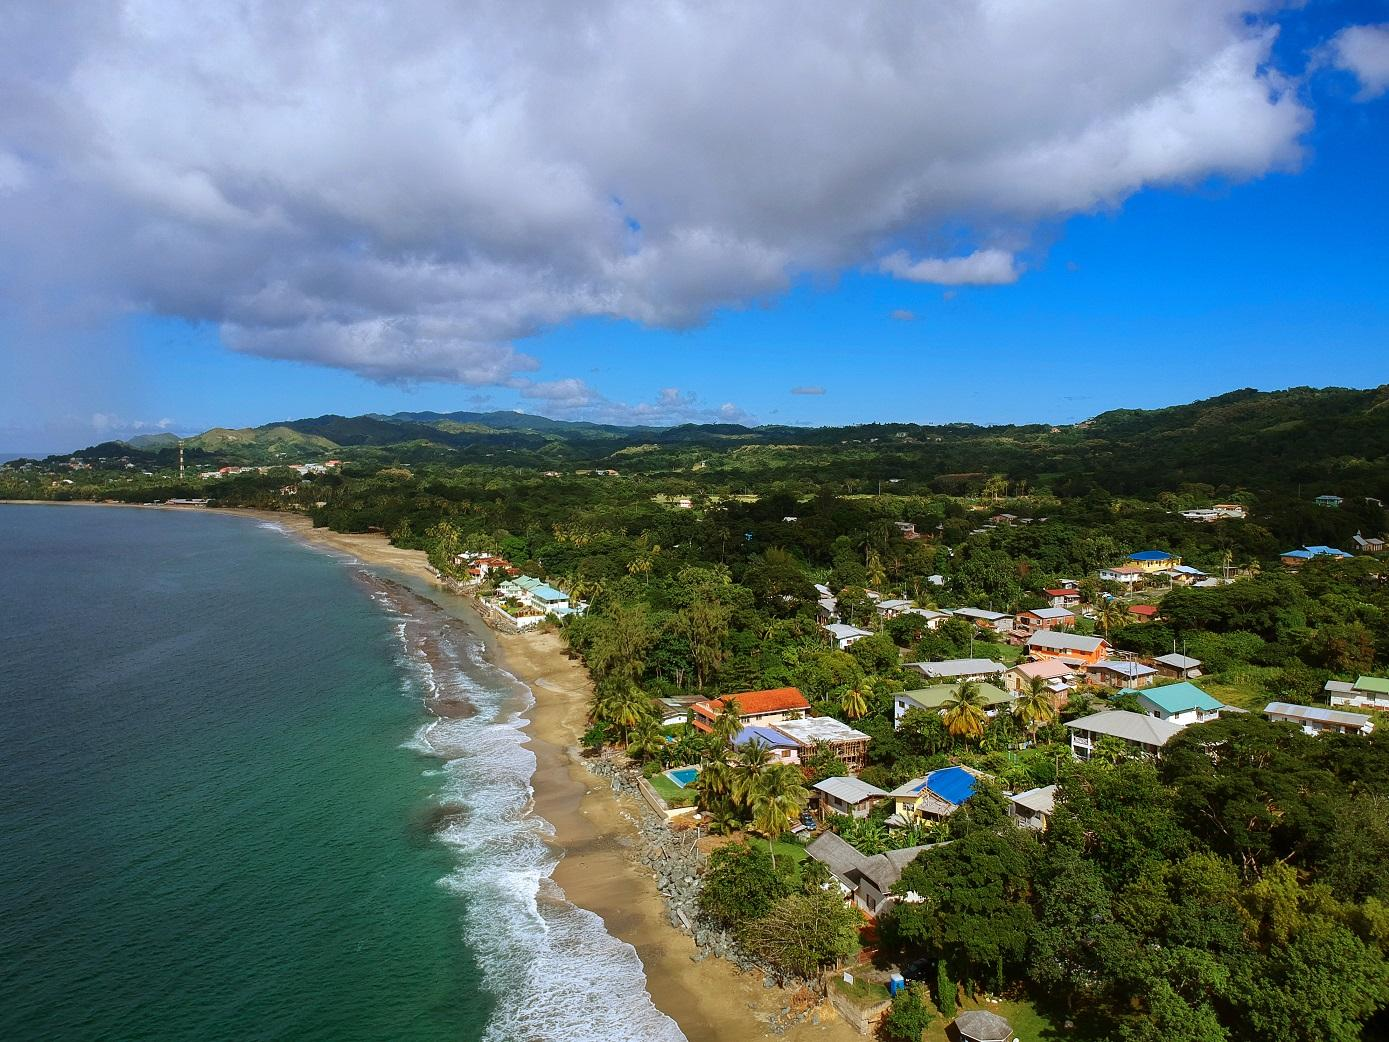 Properties on Tobago's coast